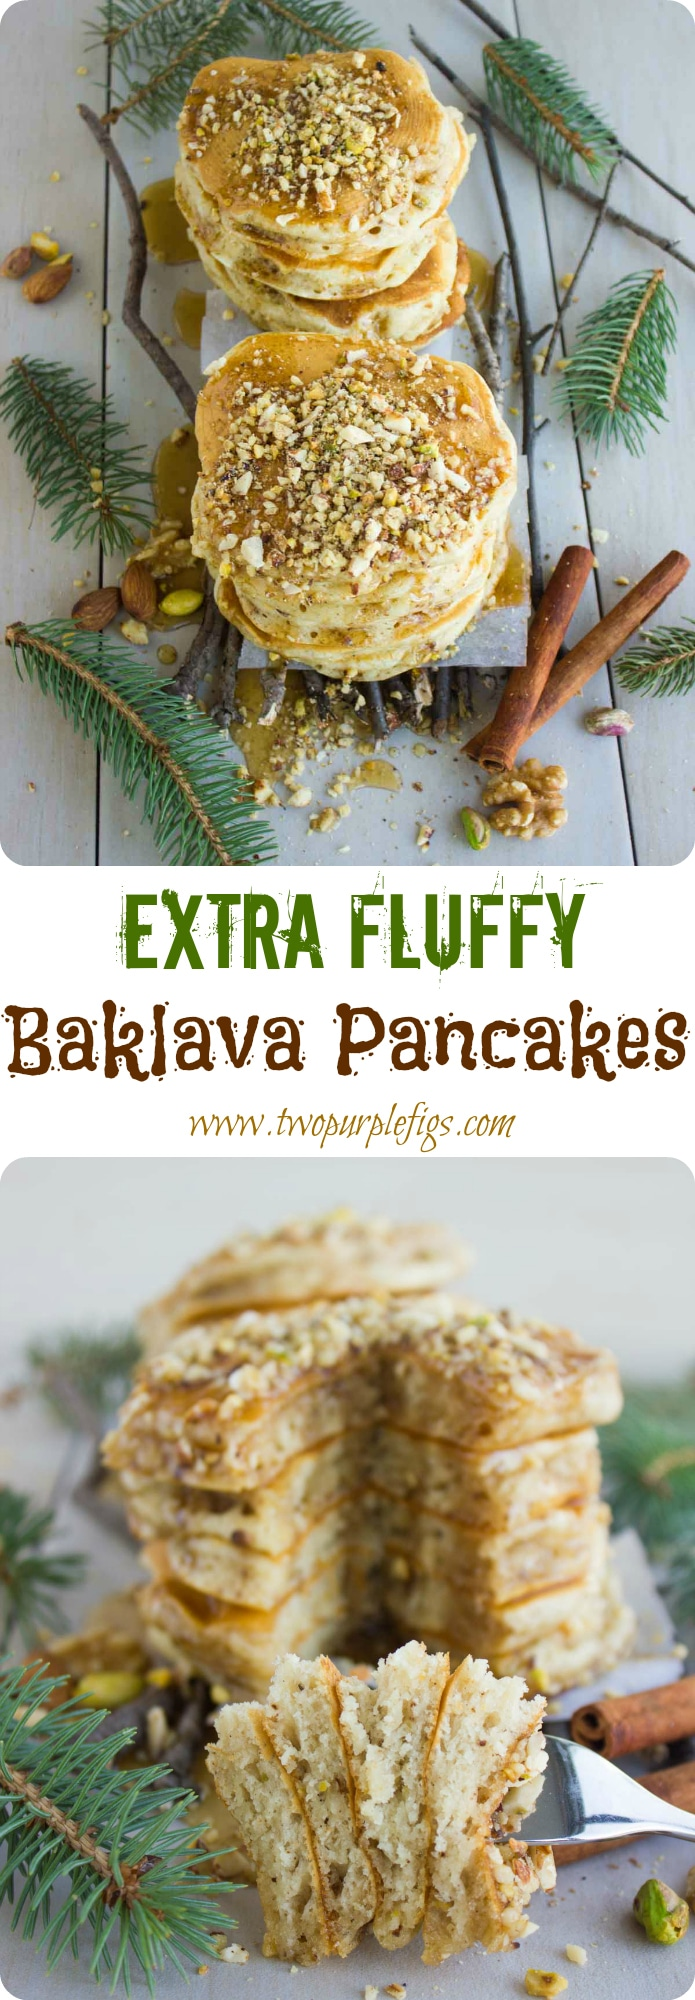 Fluffy Baklava Pancakes| North America meets the Middle East in these fluffy orange-scented Baklava Pancakes topped with chopped nuts and drizzled with Canadian Maple Syrup! Serve these fluffy buttermilk pancakes as a special breakfast treat and you'll be declared mom of the year! #breakfast, #brunch, #pancakes, #baklava